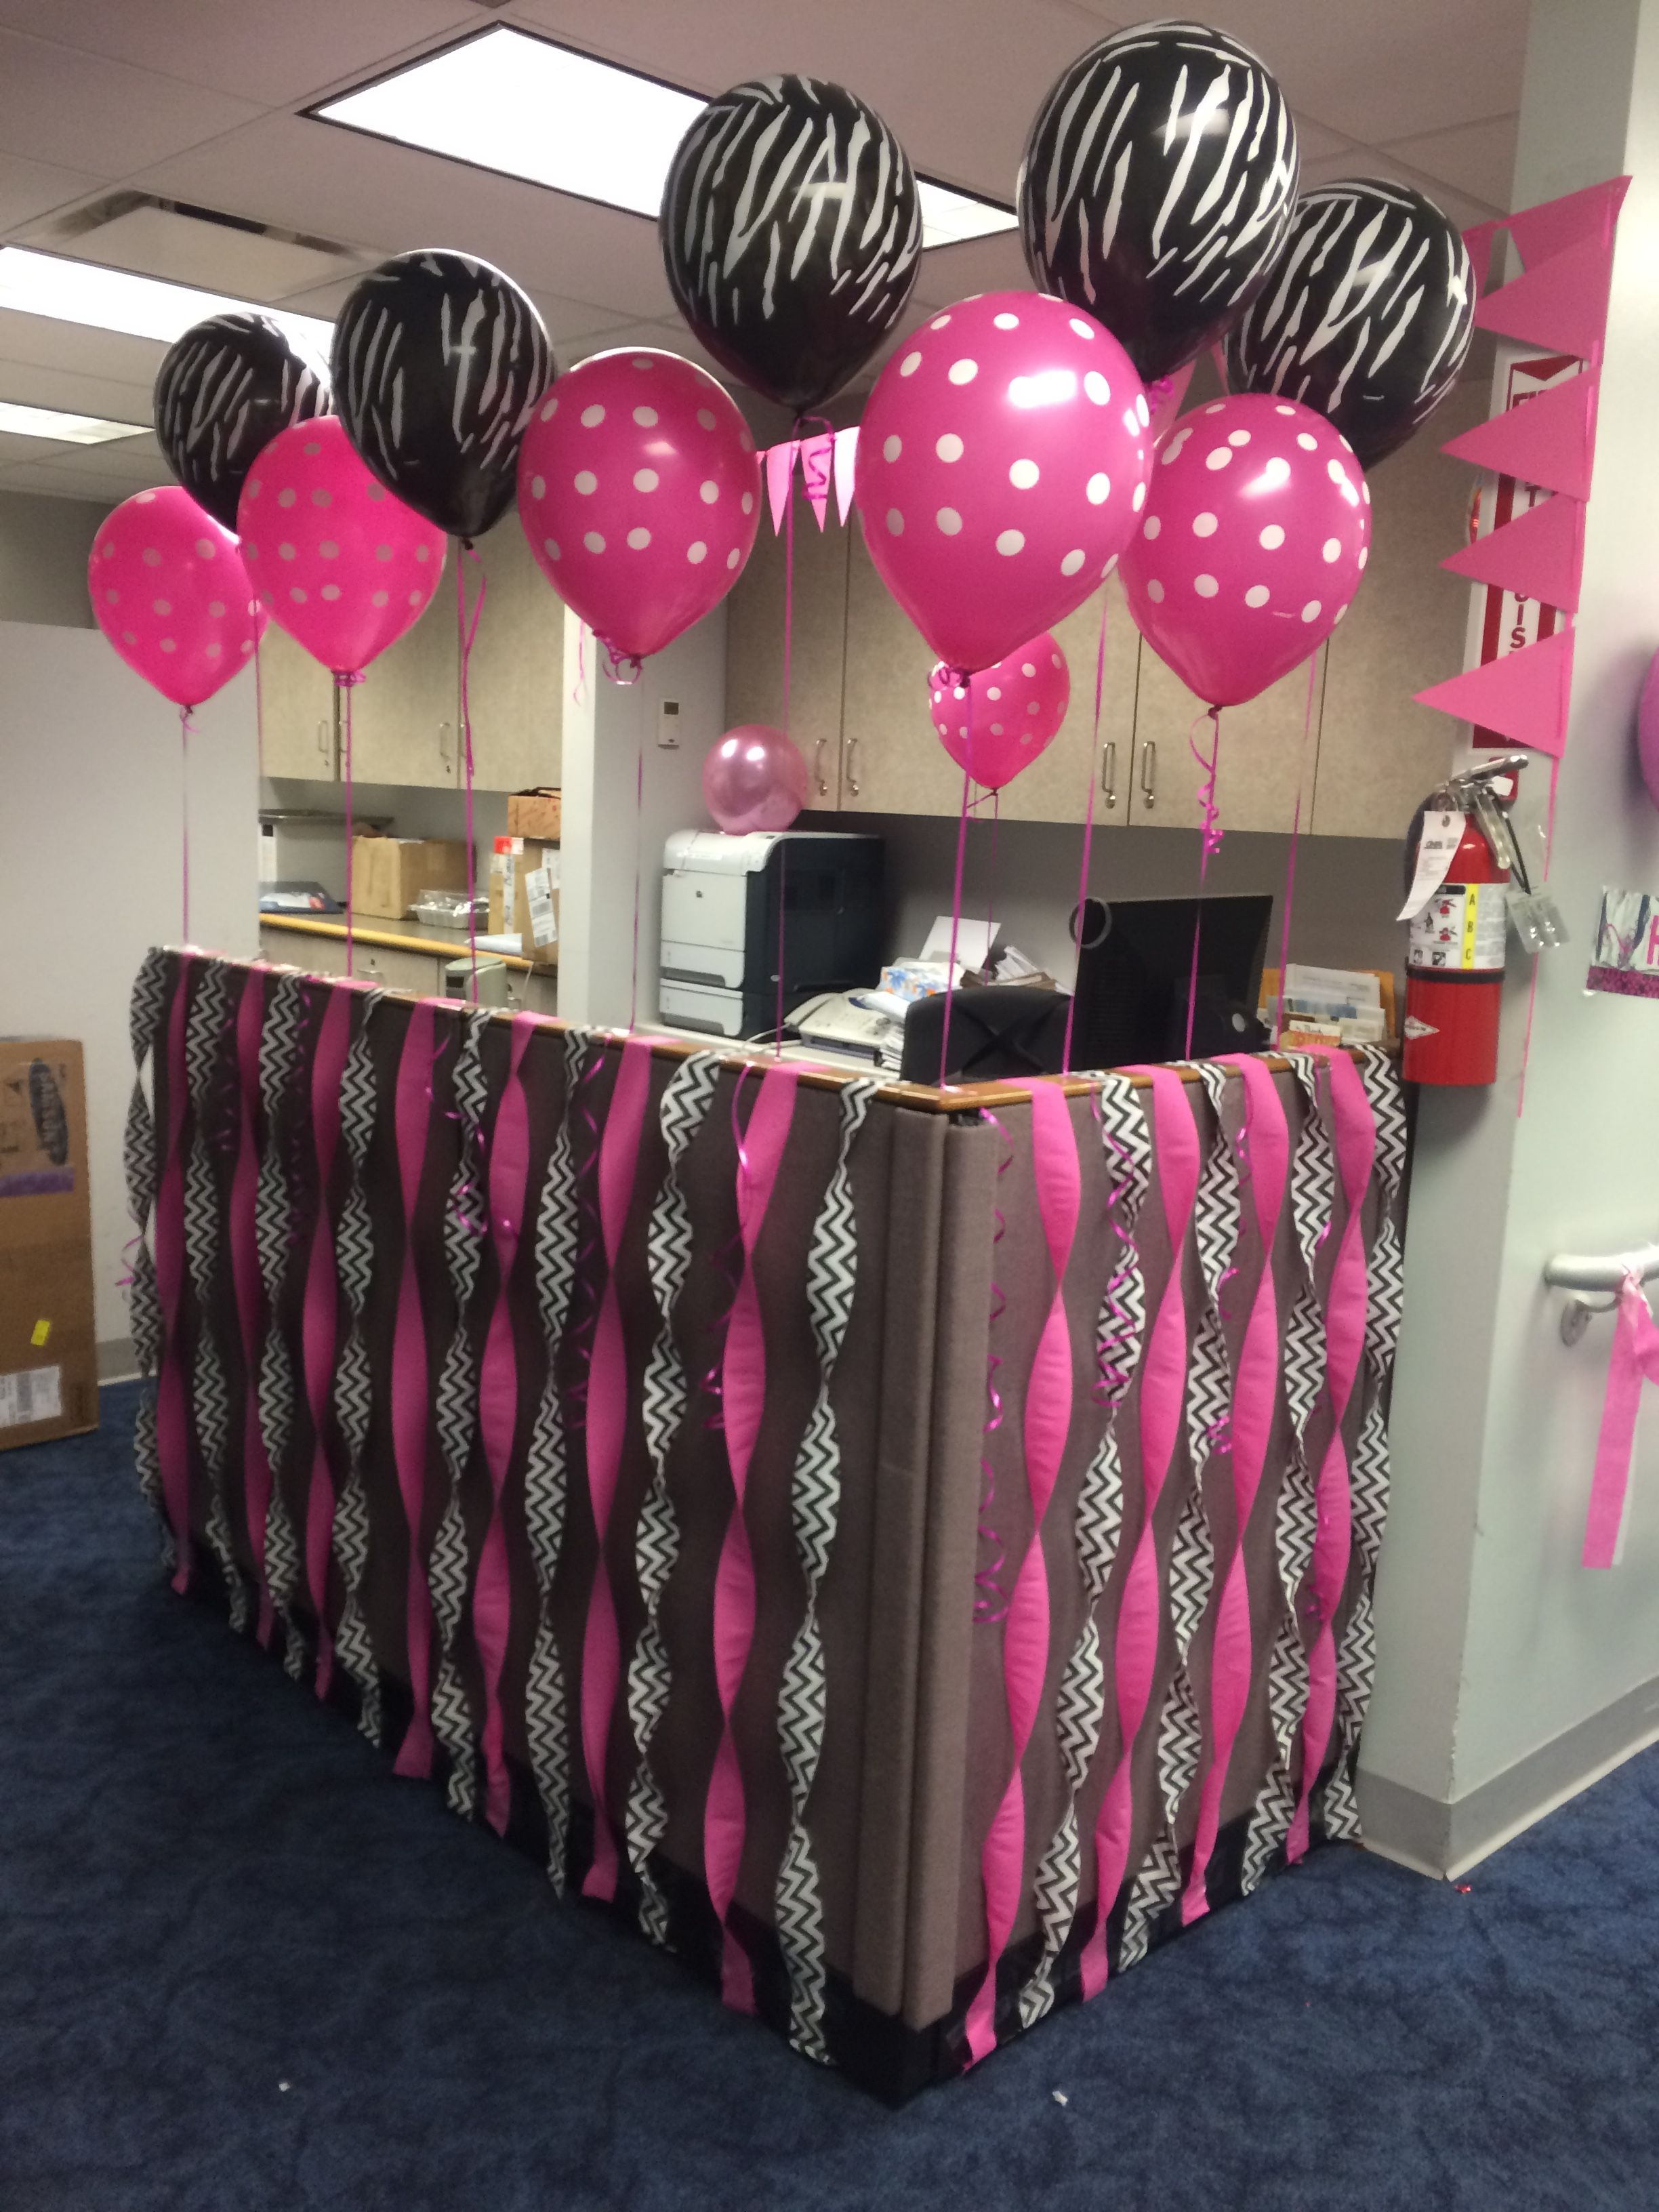 Cubicle Decor Cubicle Birthday Decorations Office Birthday Decorations Office Birthday Party